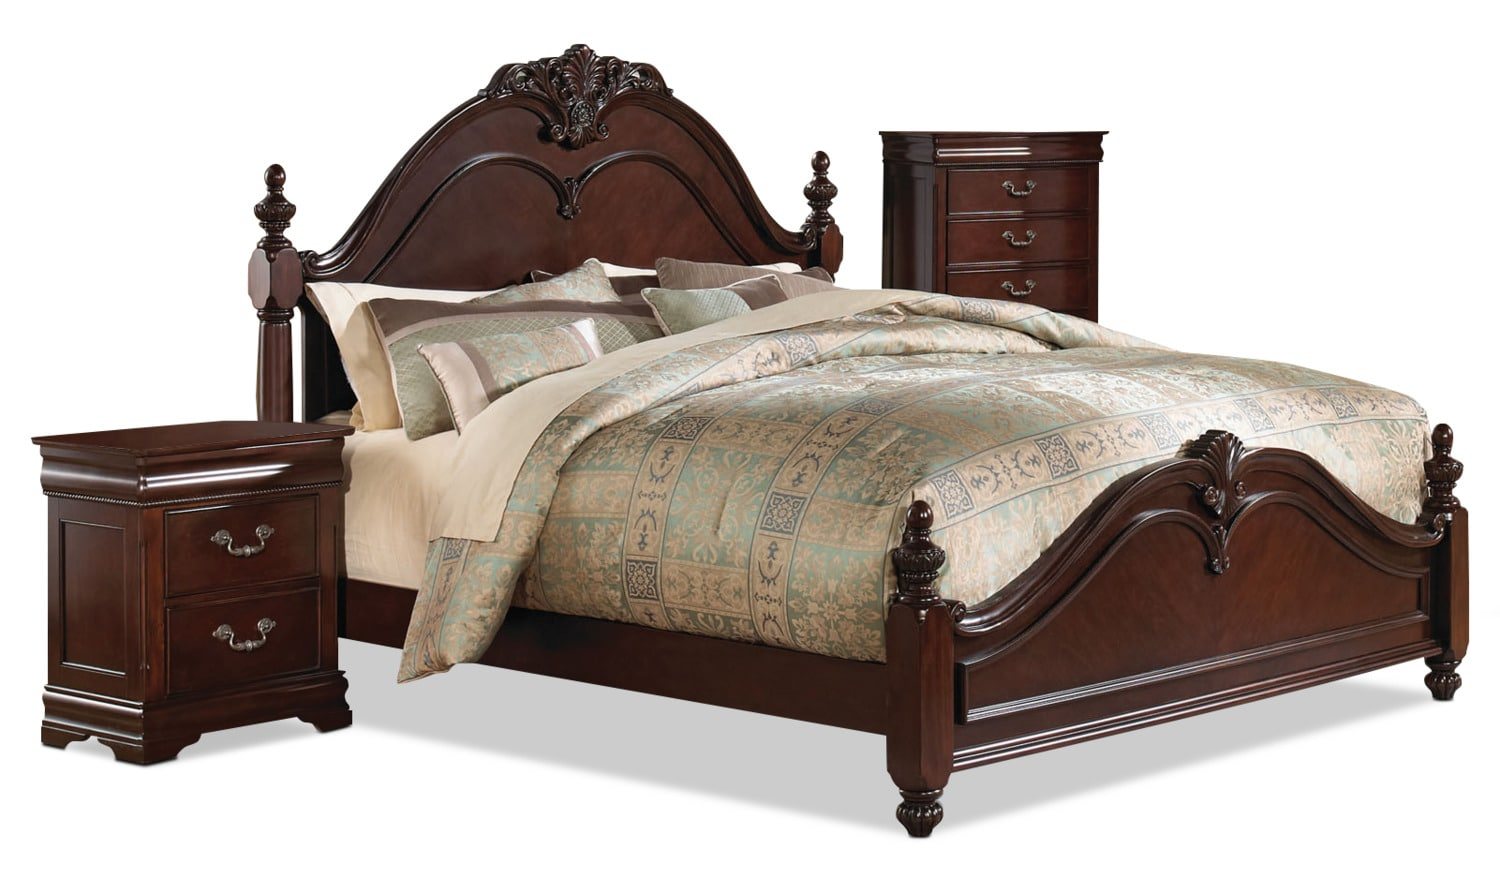 Westchester 5 Piece Queen Bedroom Package With Chest And Nightstand The Brick